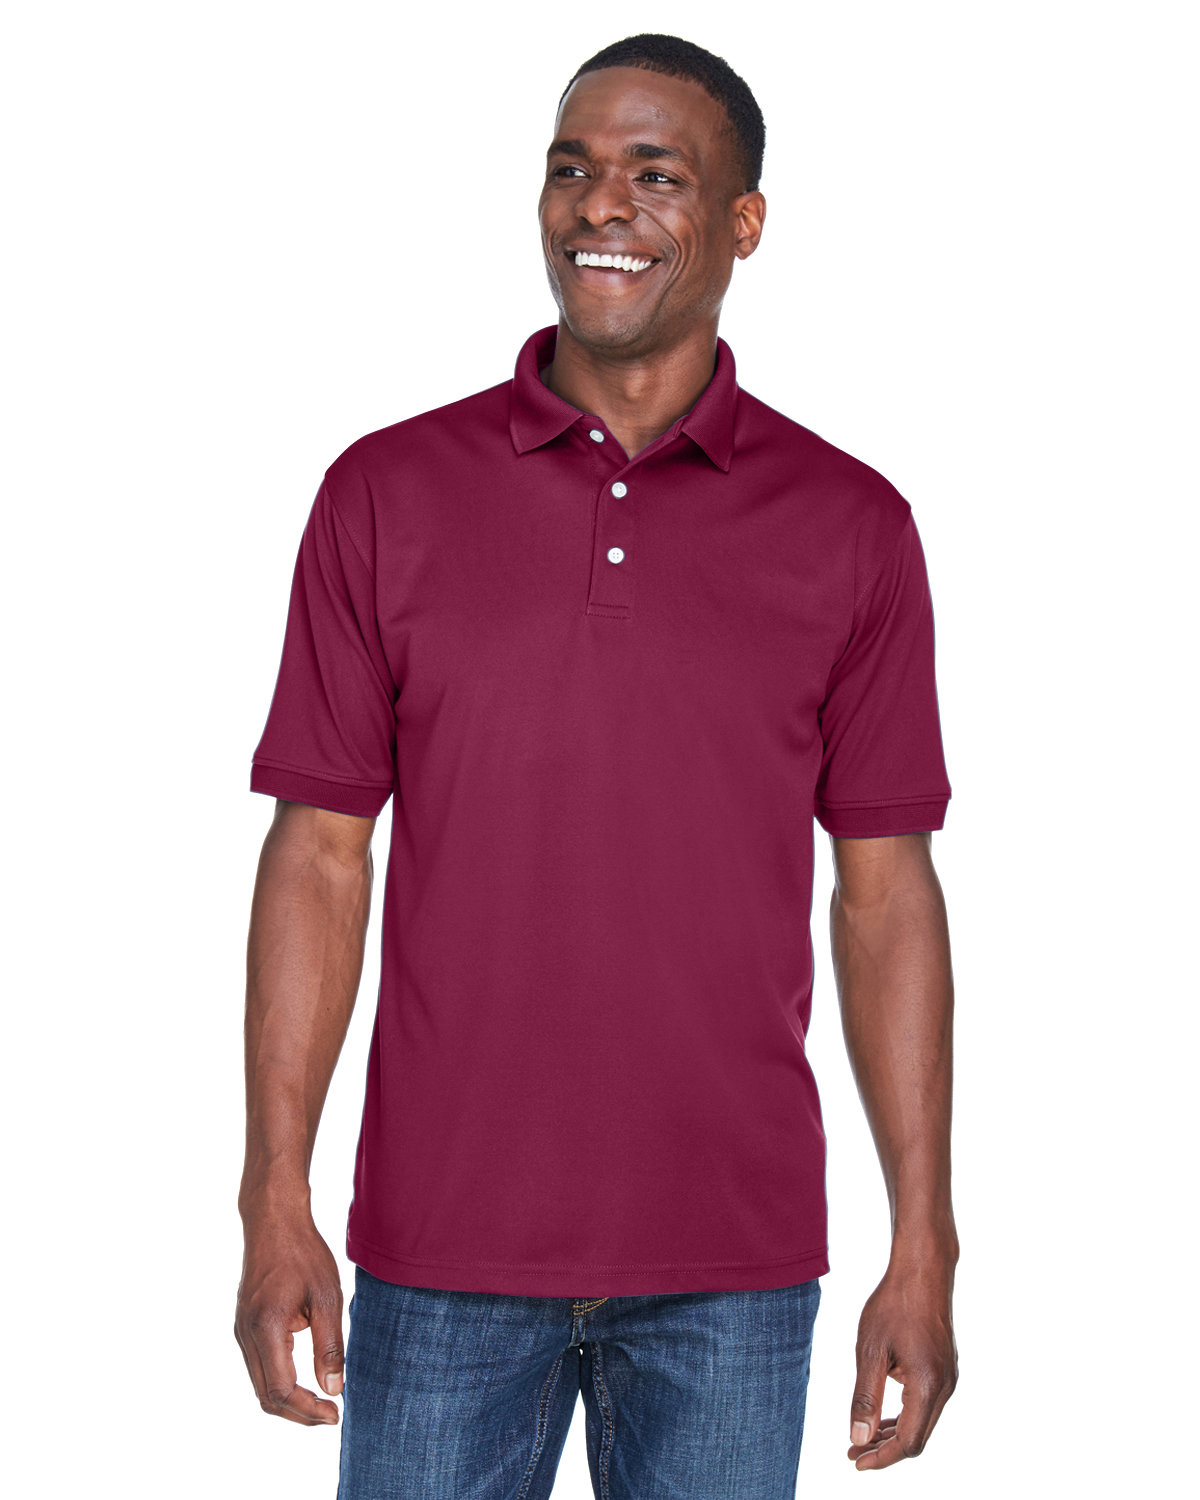 UltraClub Men's PlatinumPerformance Piqué Polo with TempControl Technology MAROON